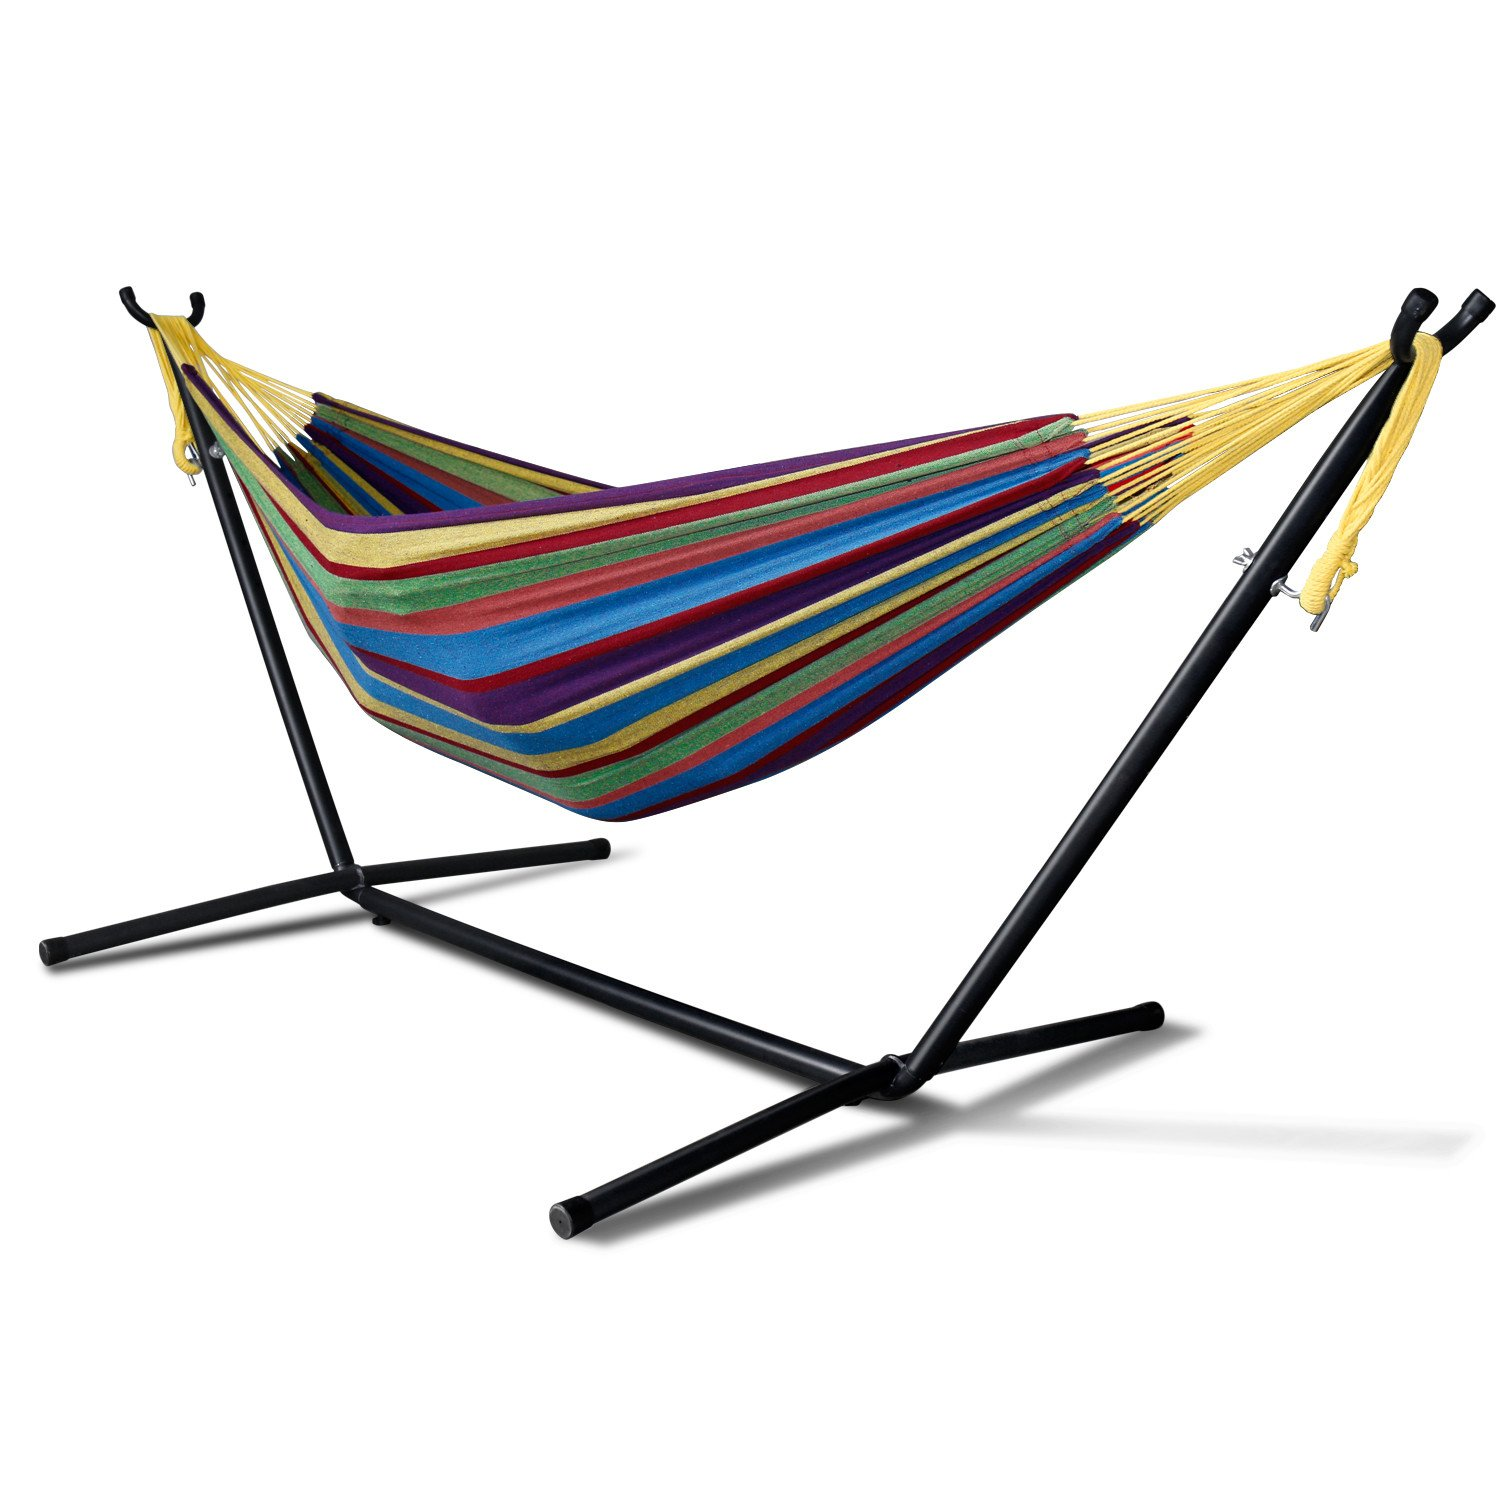 Double Hammock, Paymenow Patio and Lawn Portable Double Hammocks With Space Saving Steel Stand Up to 450lbs Includes Portable Carrying Case (Tropical)